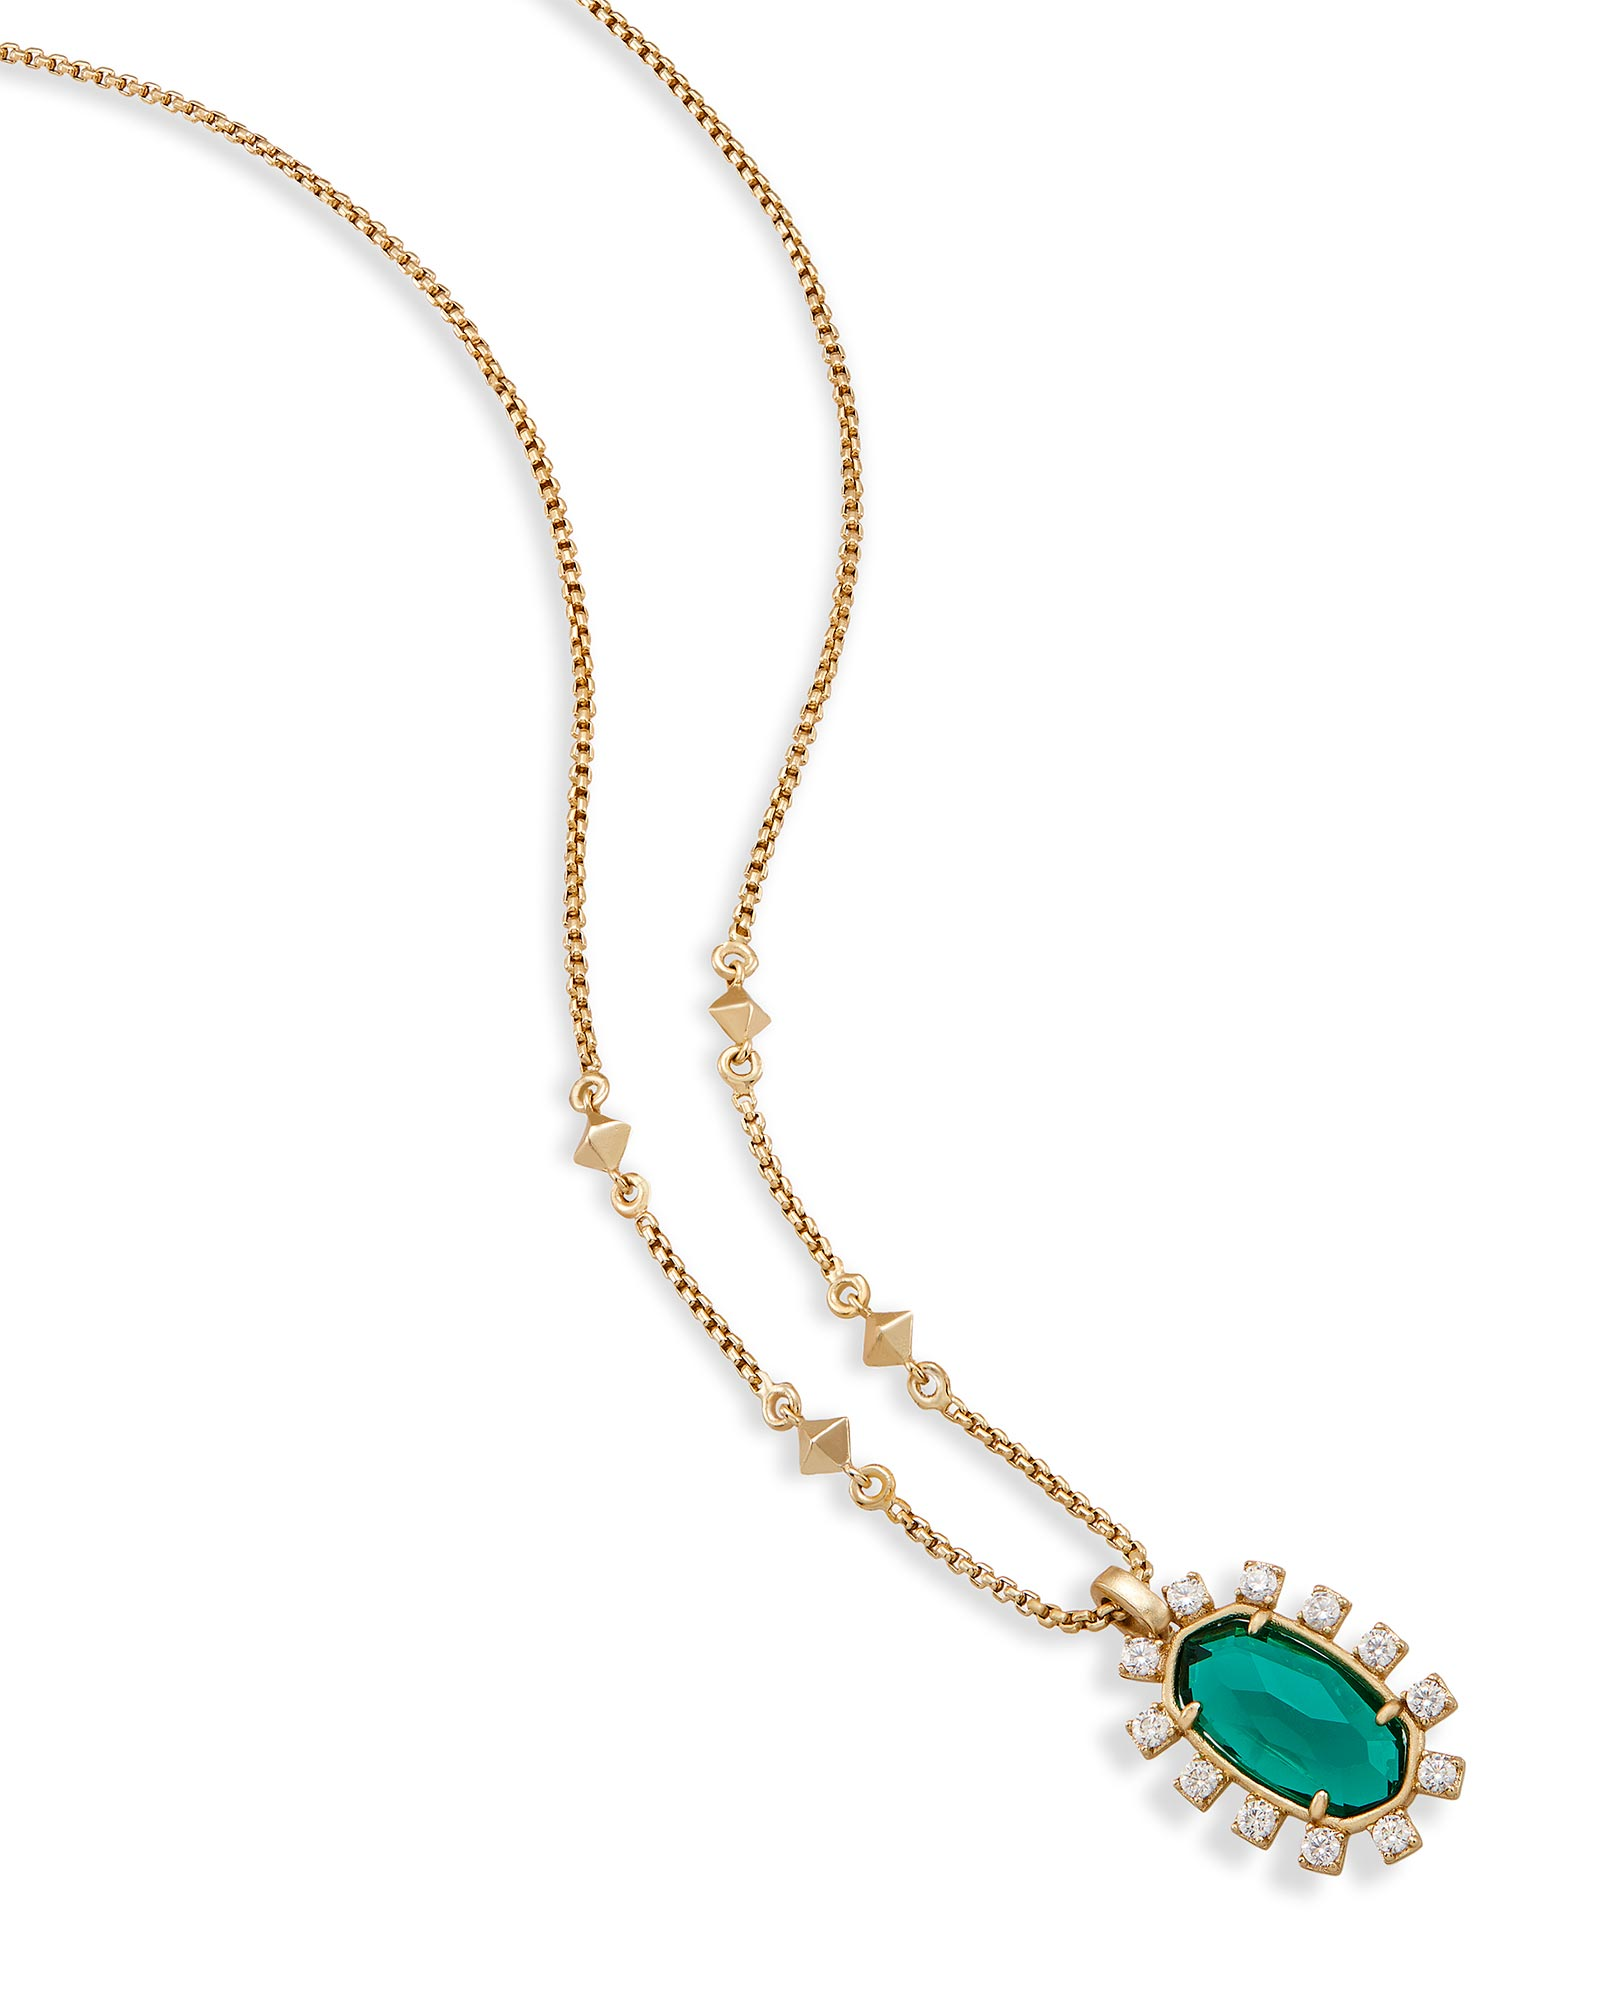 micropav emerald detailmain necklace gold lrg phab white pendant main in and blue micropave diamond